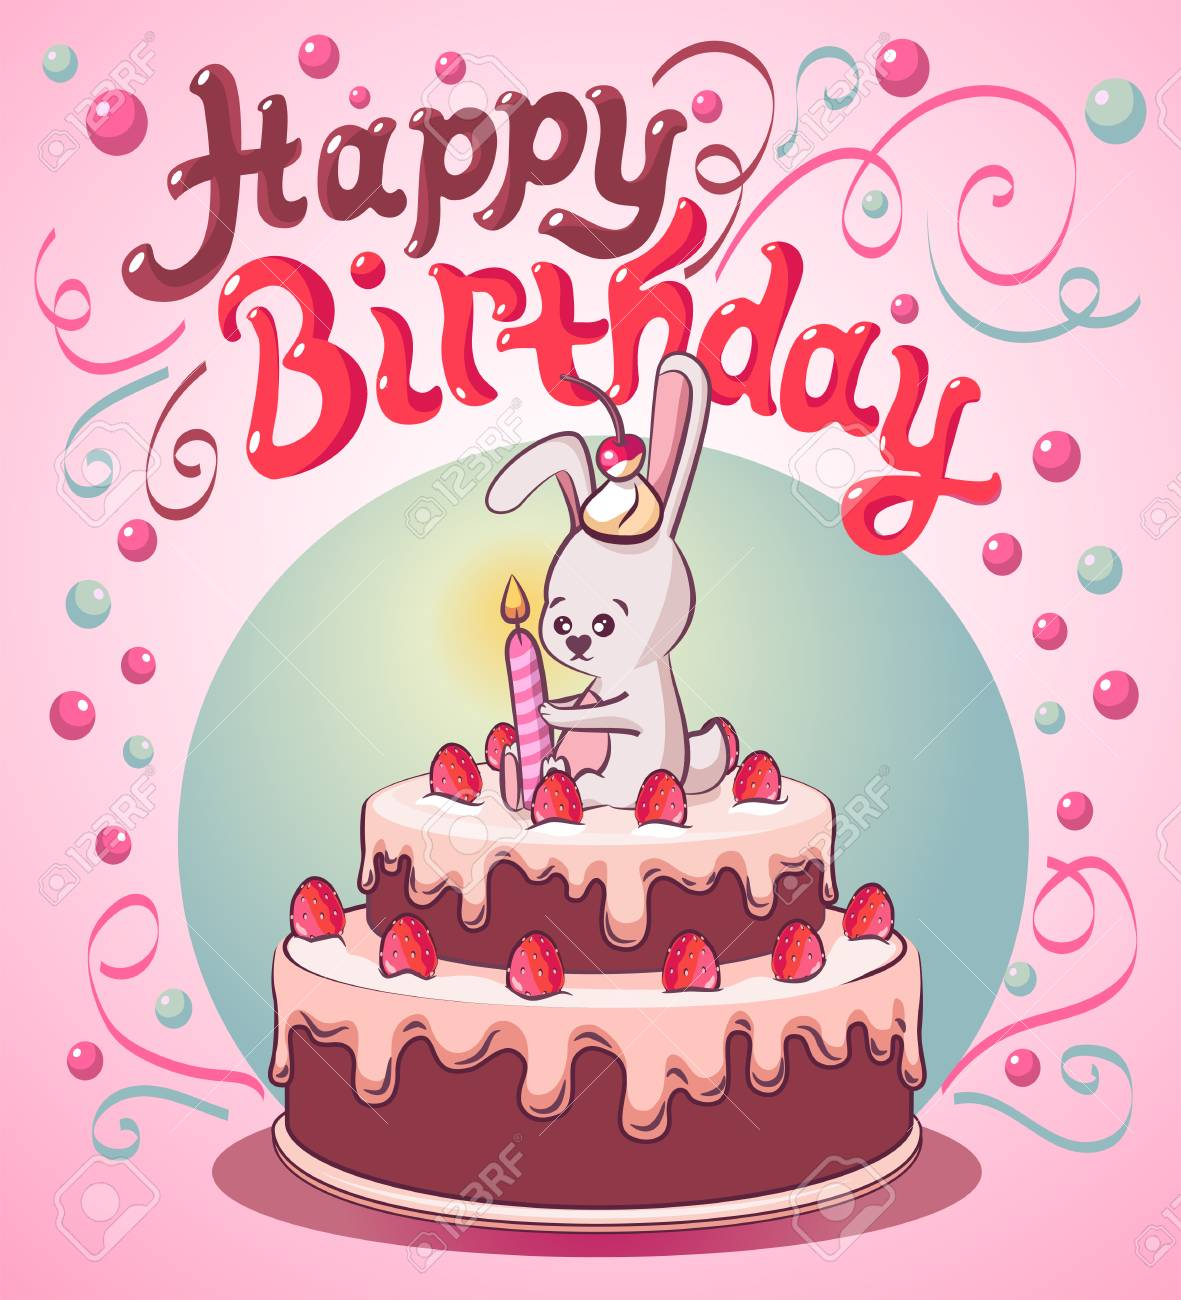 Admirable Happy Birthday Cake With Strawberry Royalty Free Cliparts Vectors Funny Birthday Cards Online Overcheapnameinfo